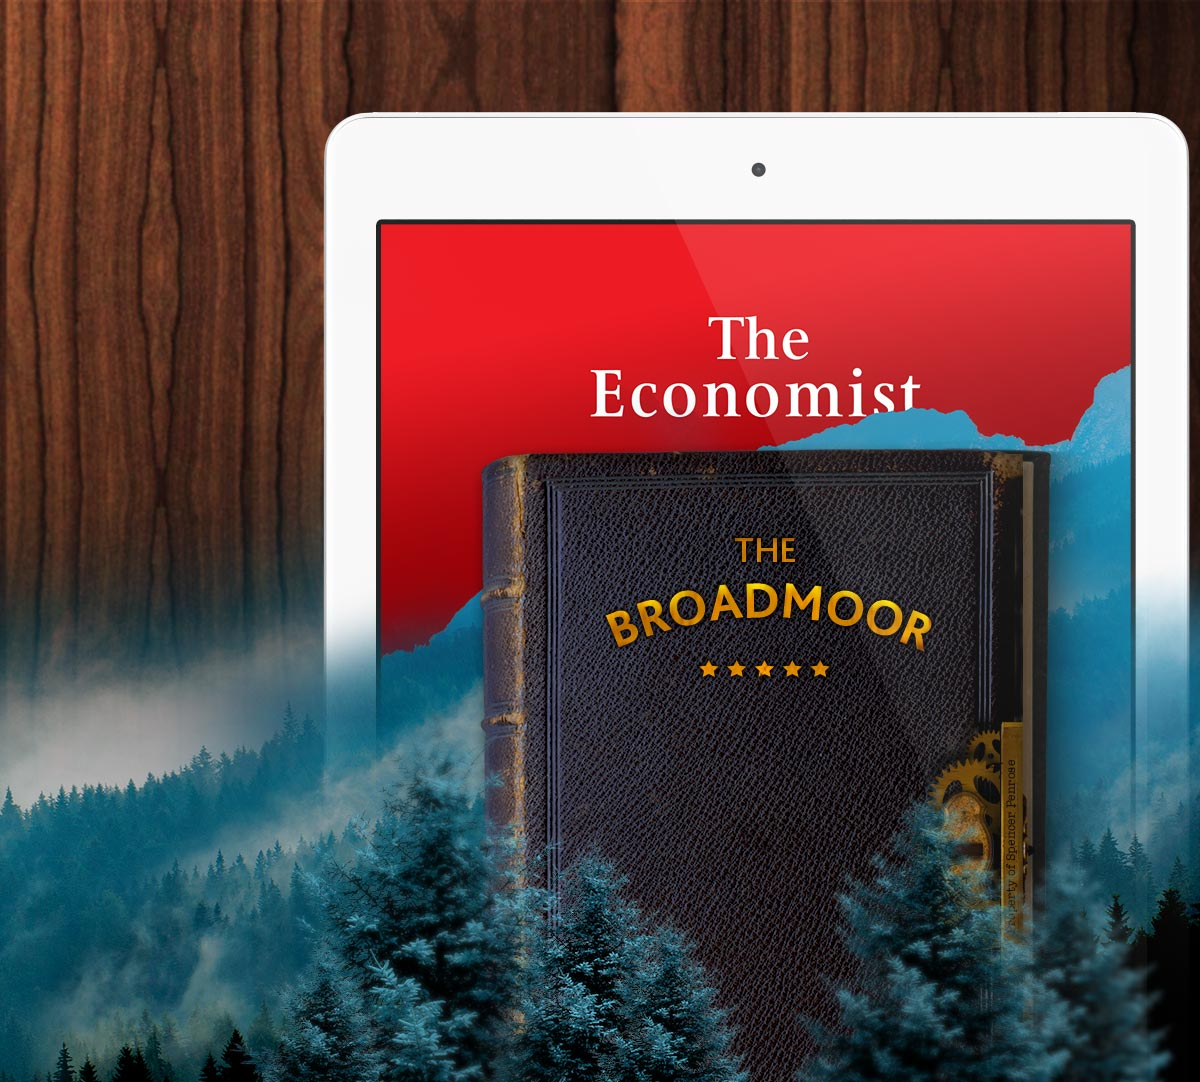 The Broadmoor Economist App